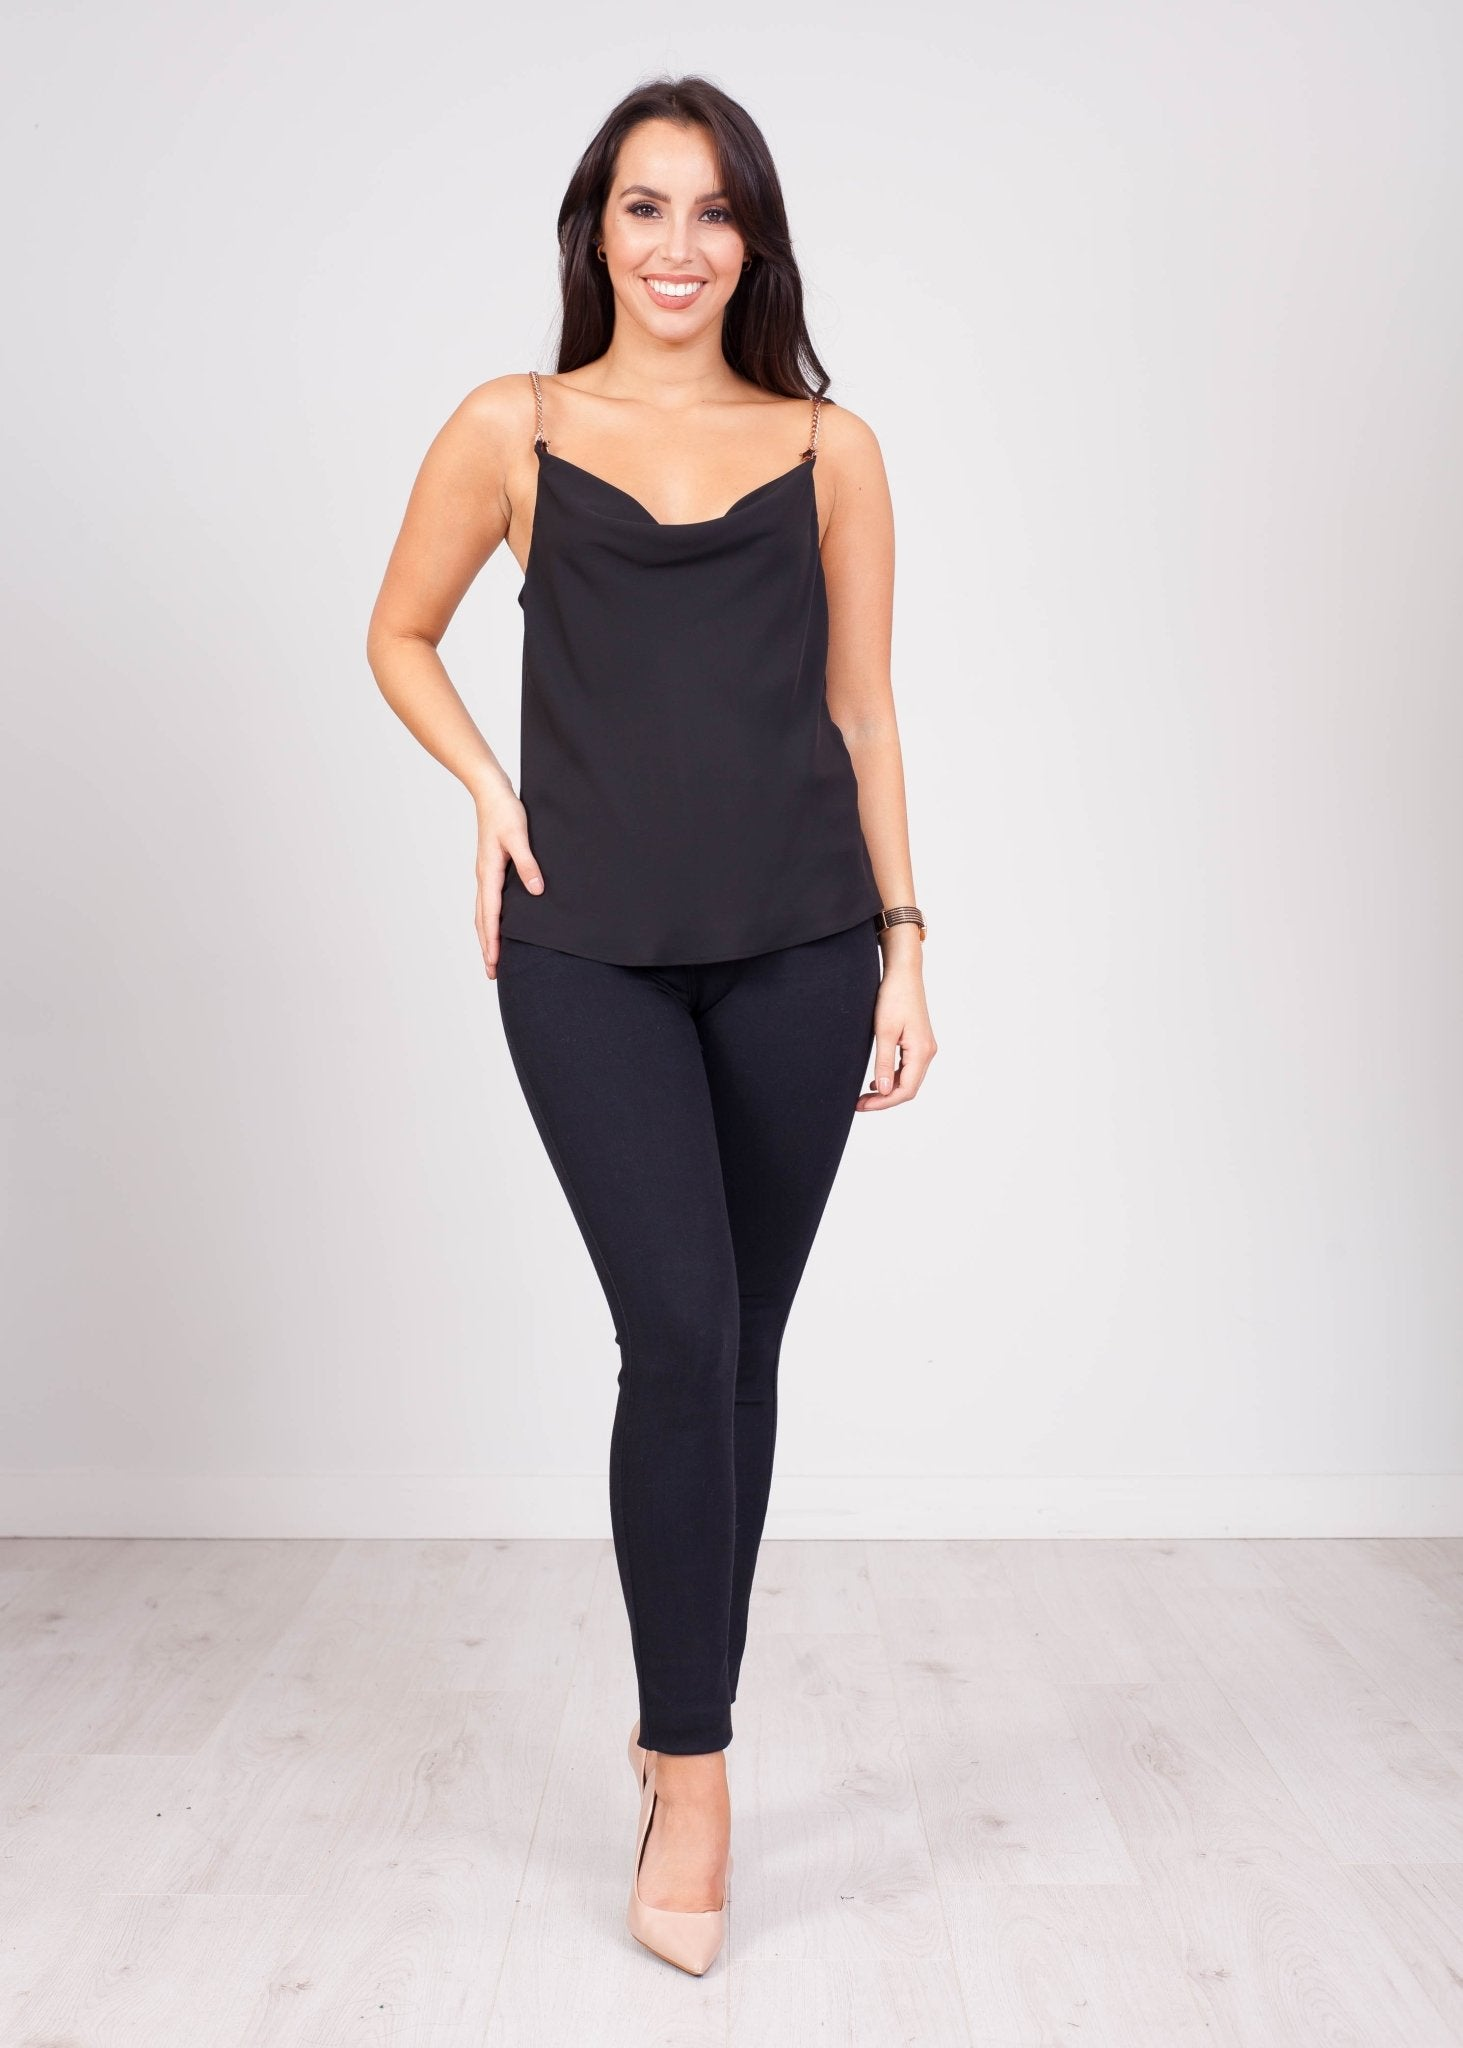 Eva Chain Cami in Black - The Walk in Wardrobe